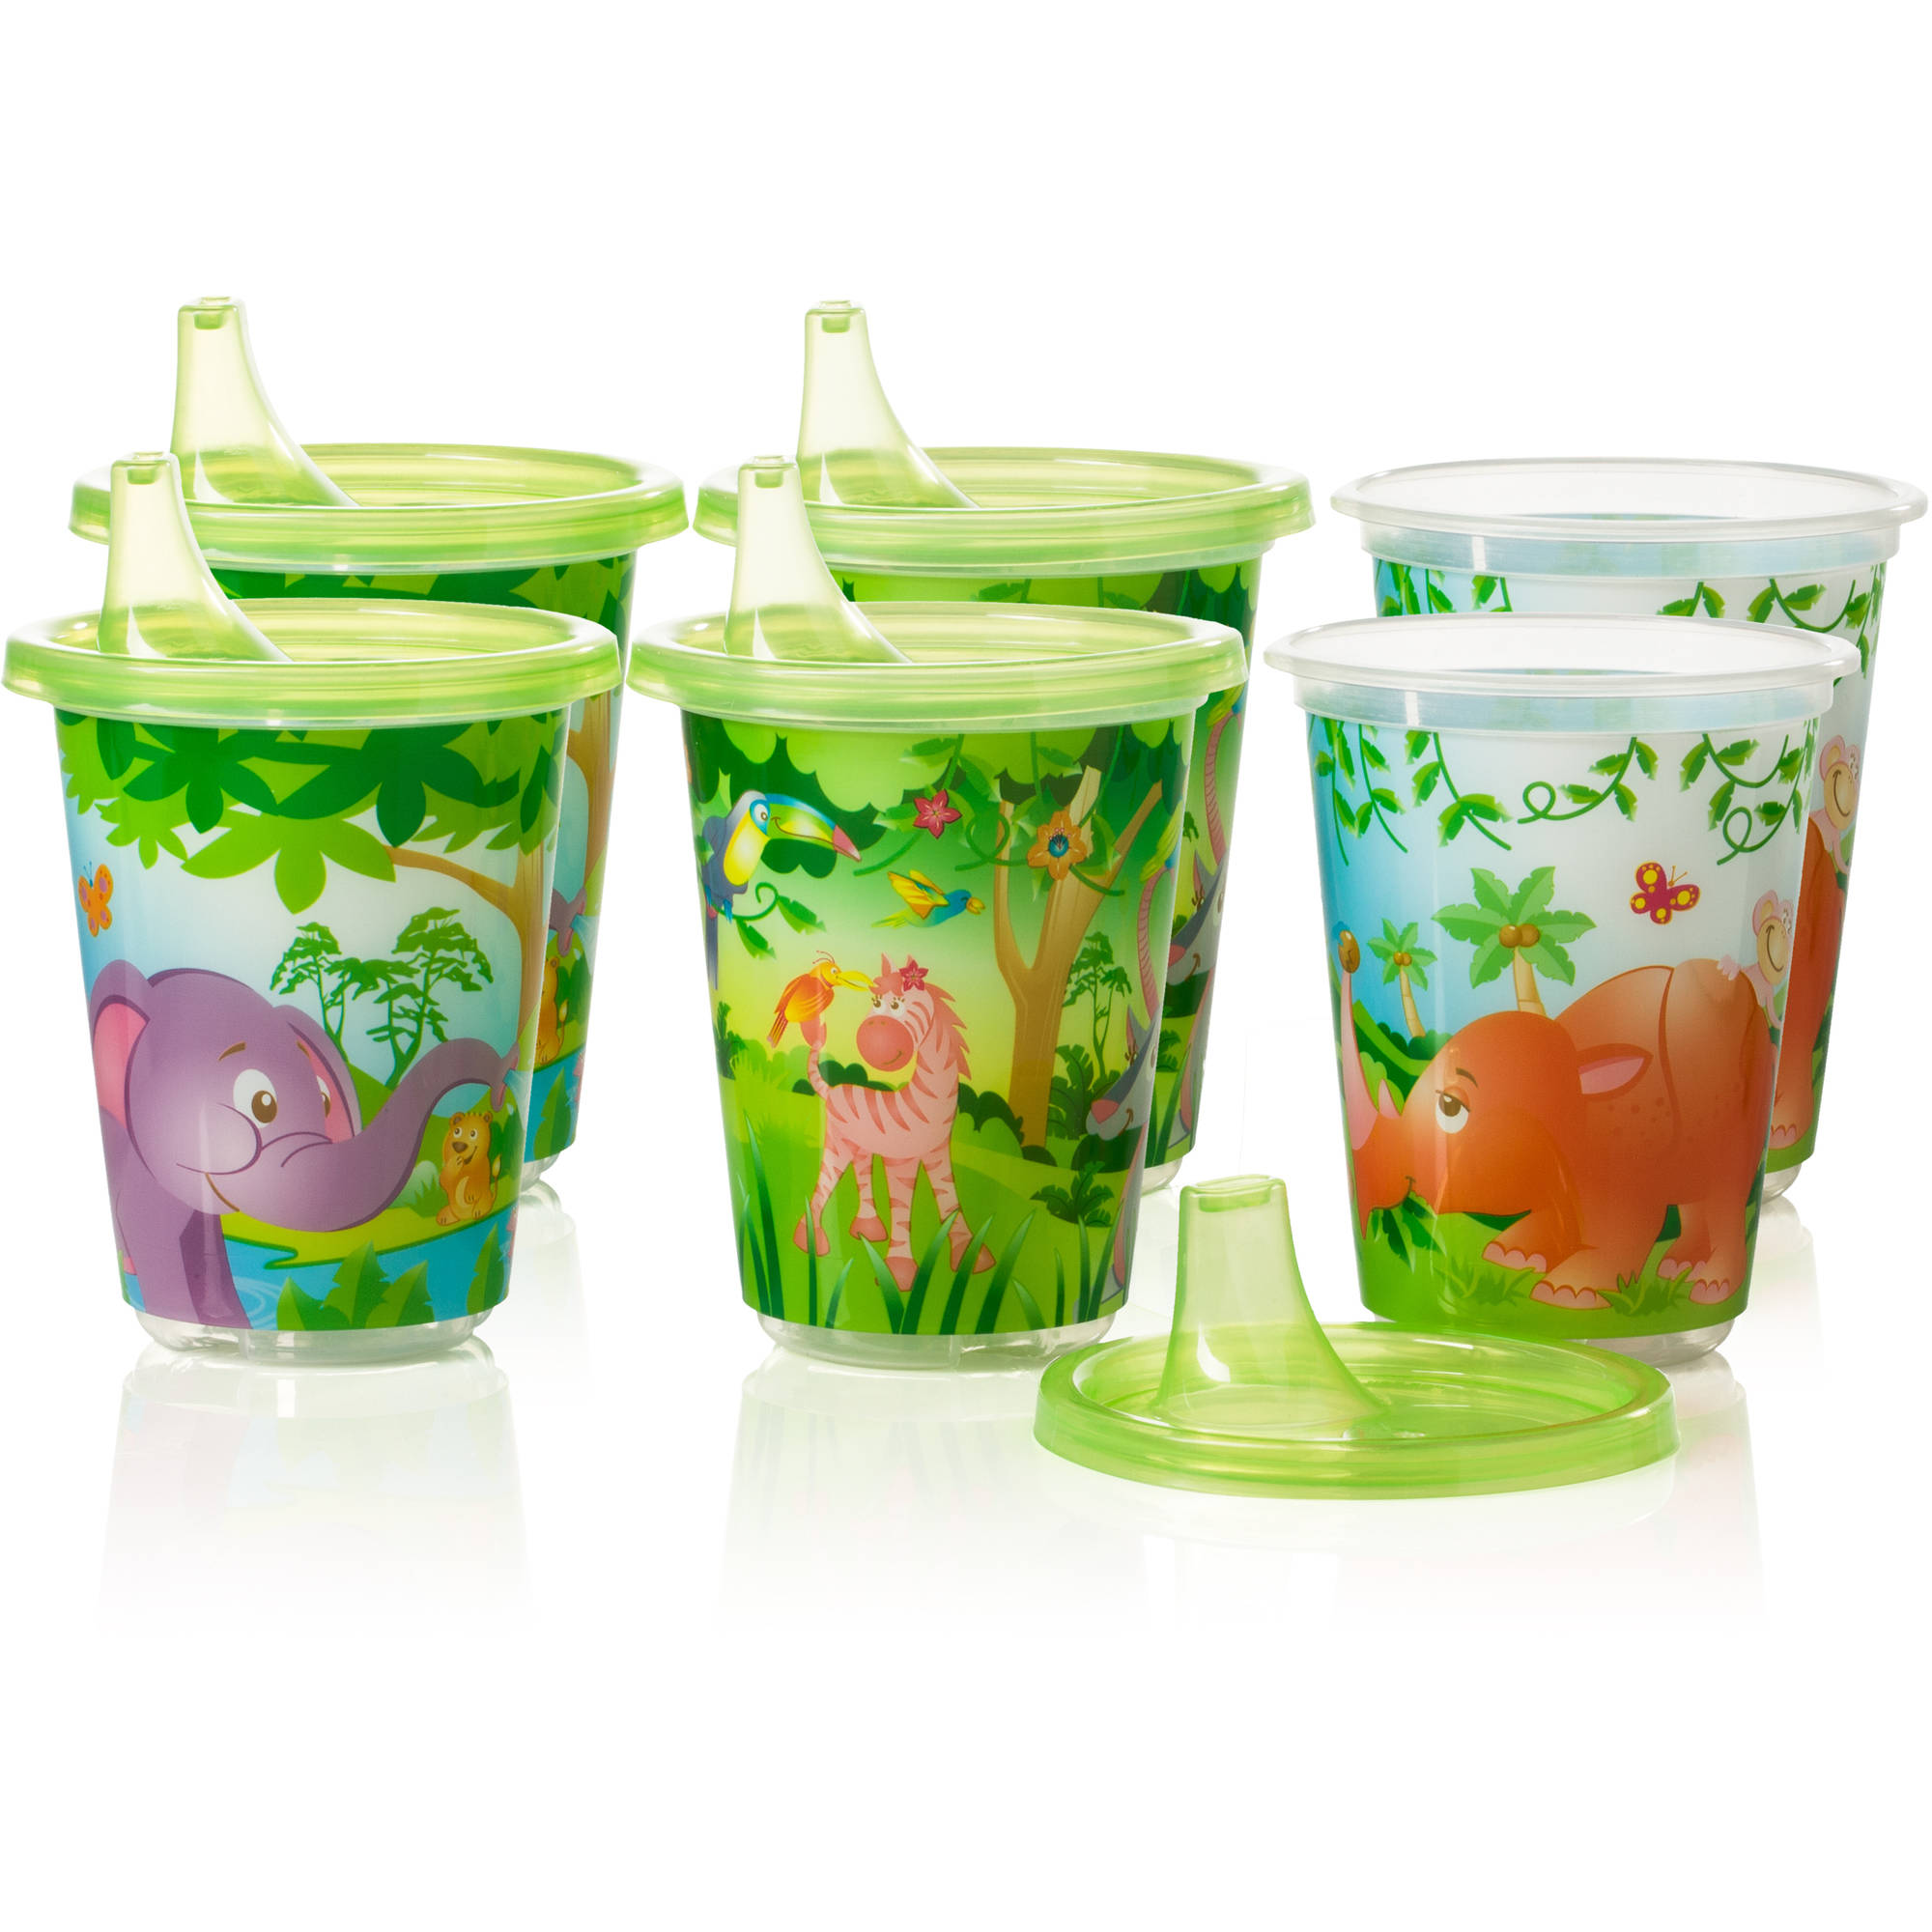 Evenflo Zoo Friends Convenience Sippy Cups, 6-Pack, BPA-Free